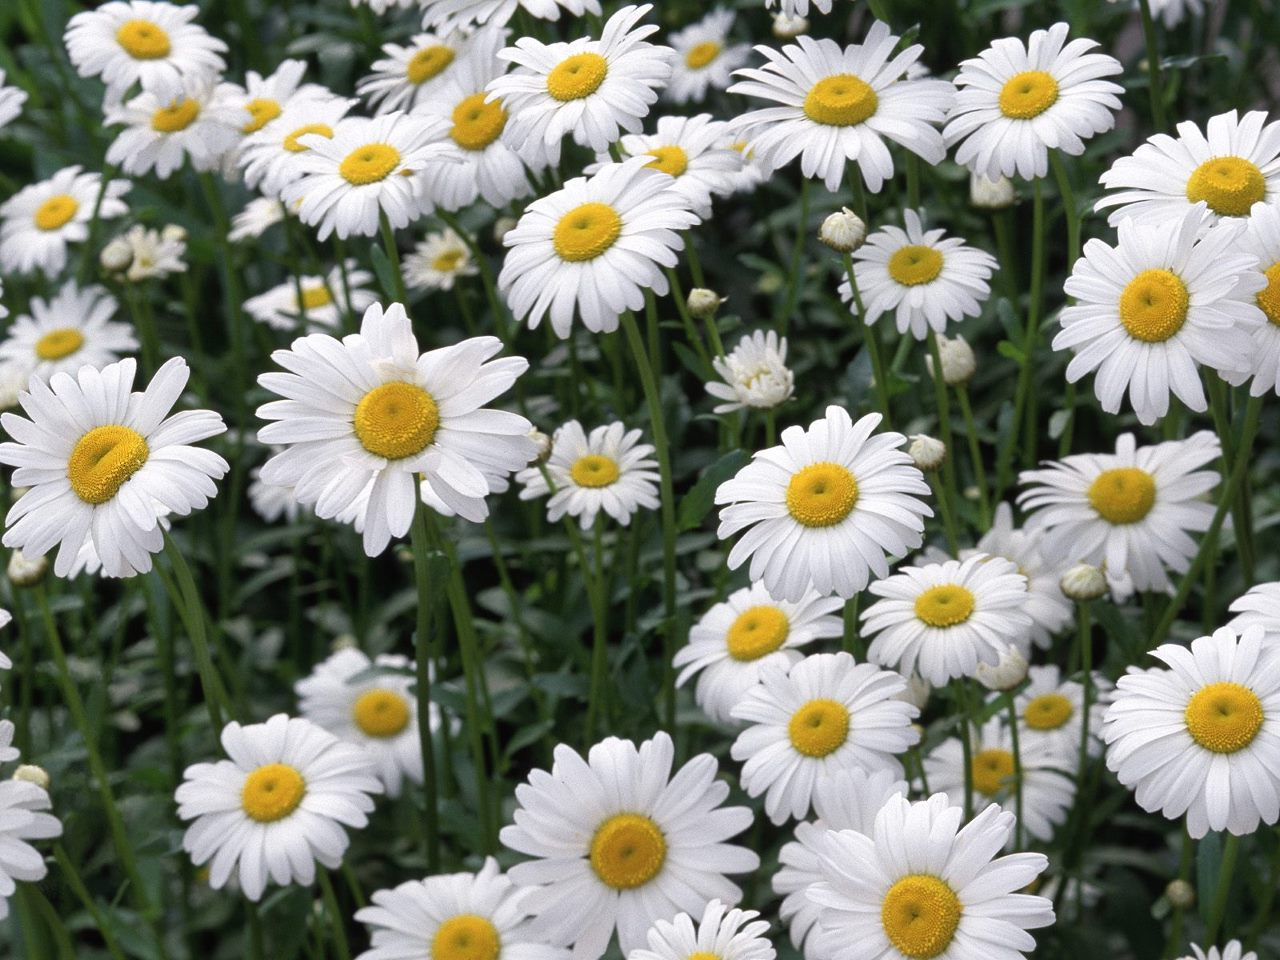 Daisy flower wallpaper flower dreams daisy flower wallpaper izmirmasajfo